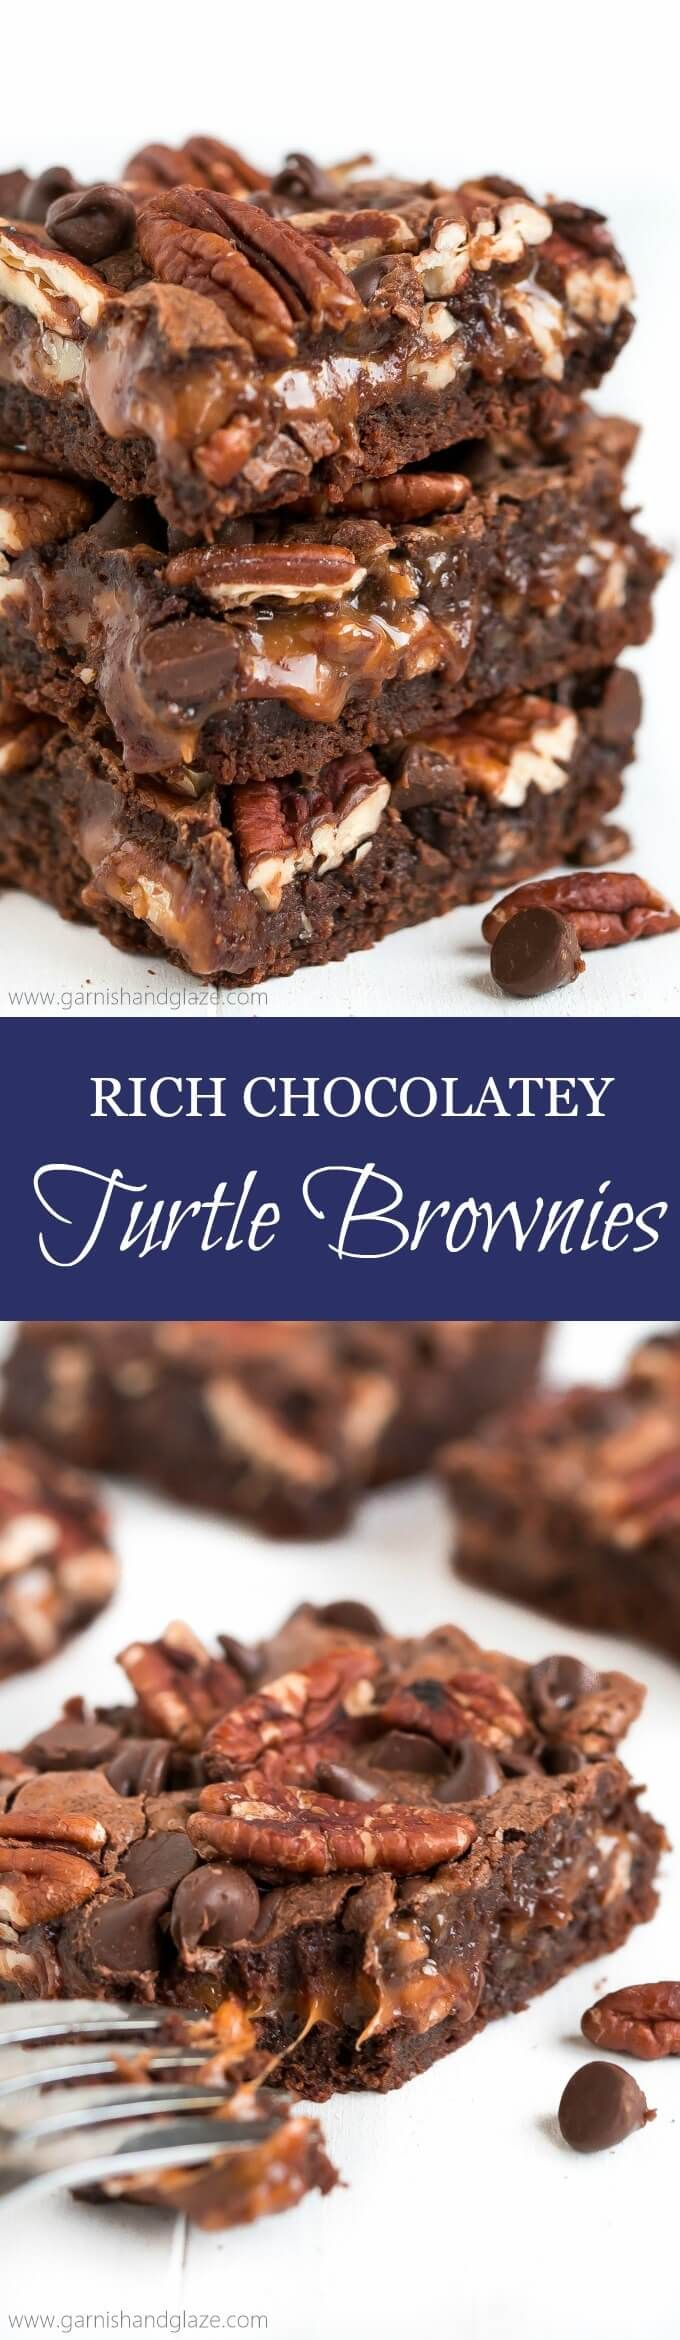 Rich Chocolatey Turtle Brownies - Garnish & Glaze